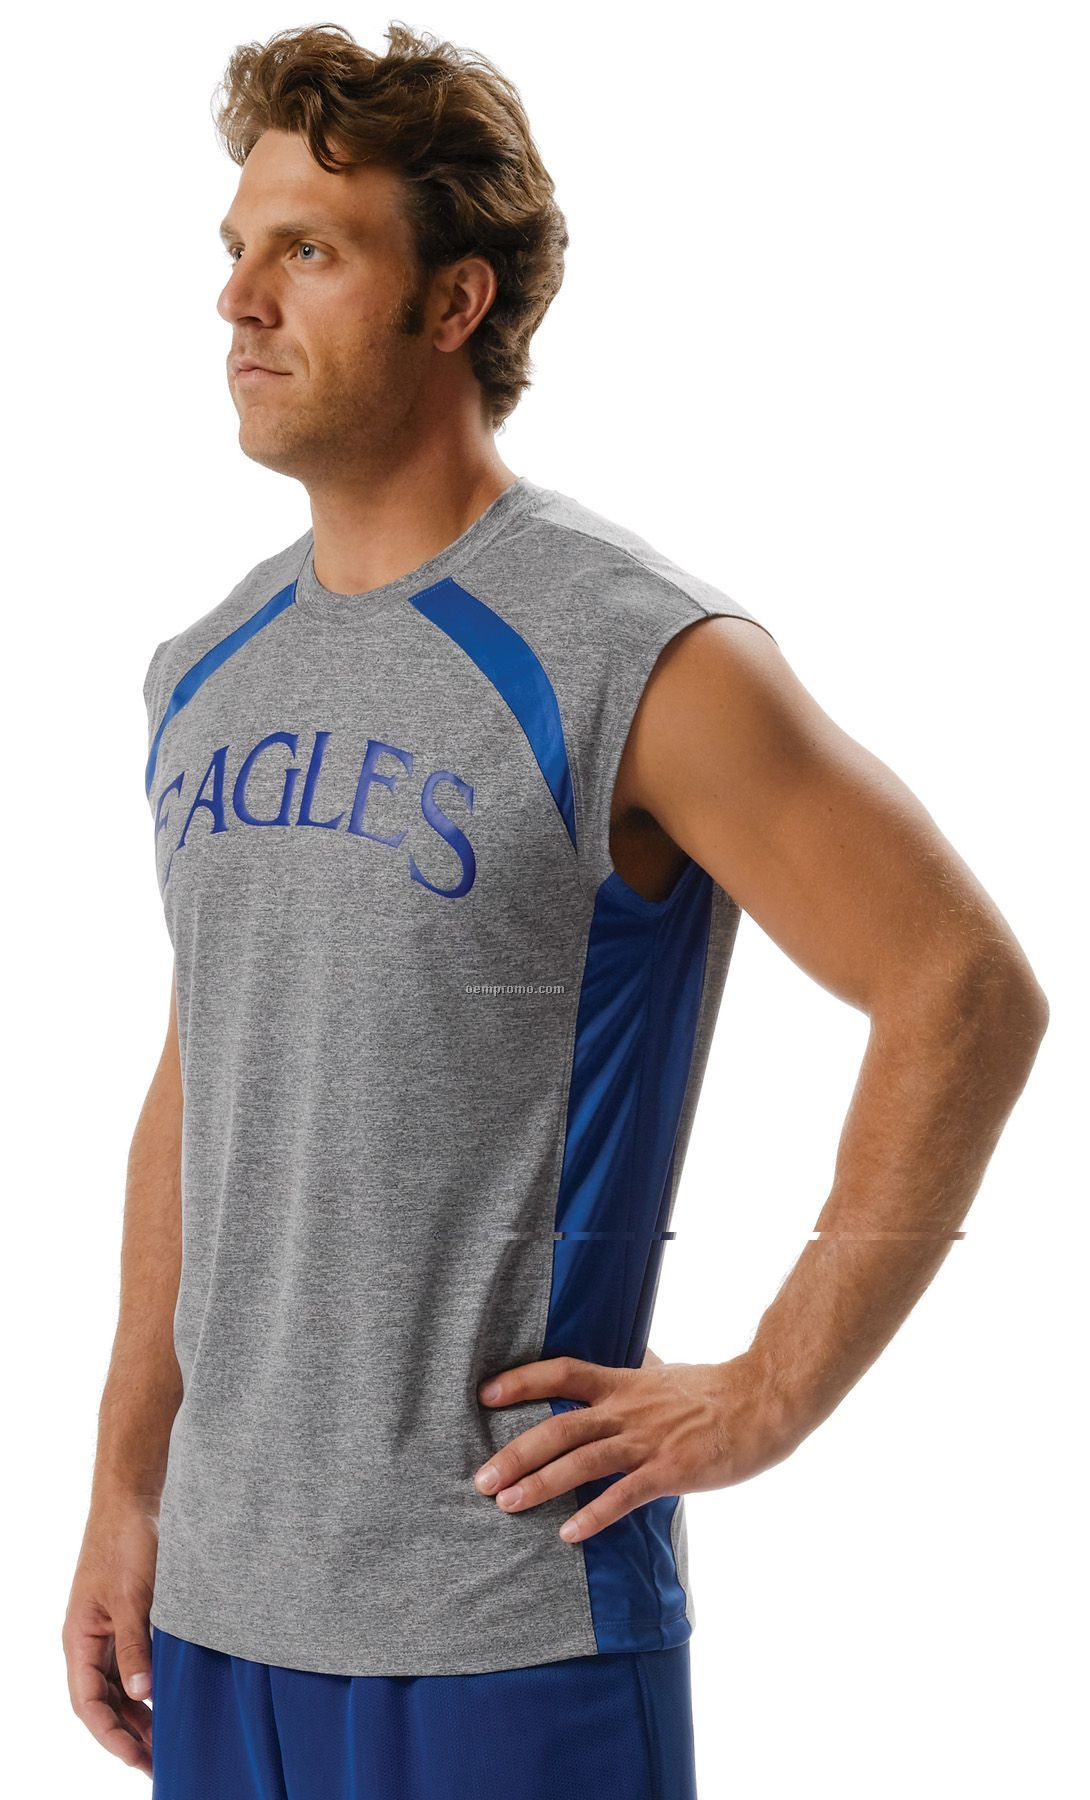 N2335 Adult Color Block Performance Muscle Tee